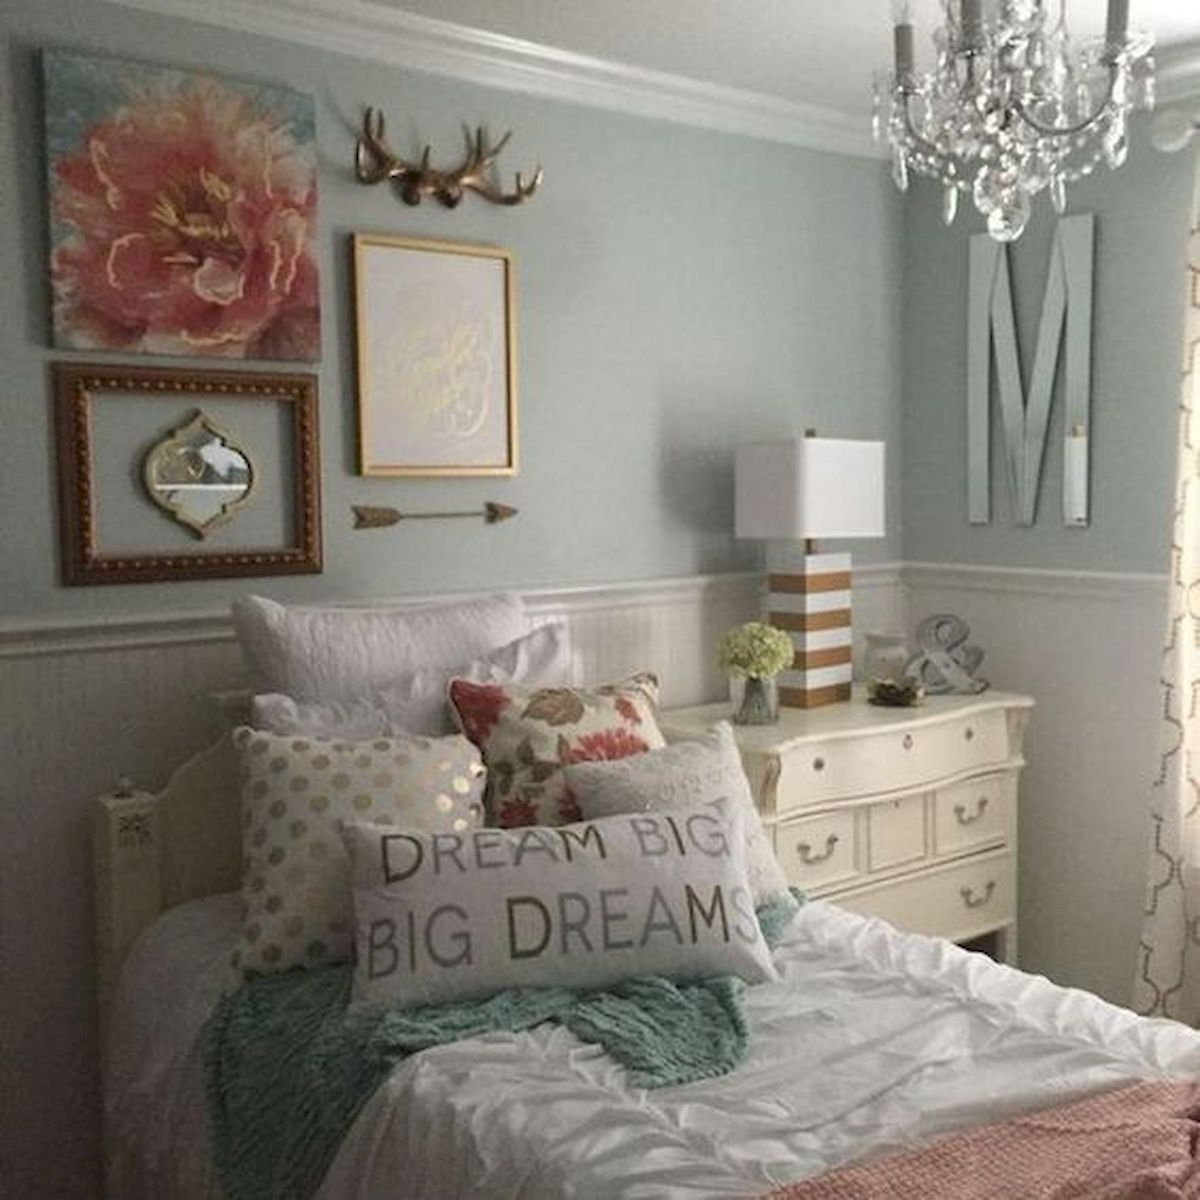 60 Cute DIY Bedroom Design and Decor Ideas for Kids (49)